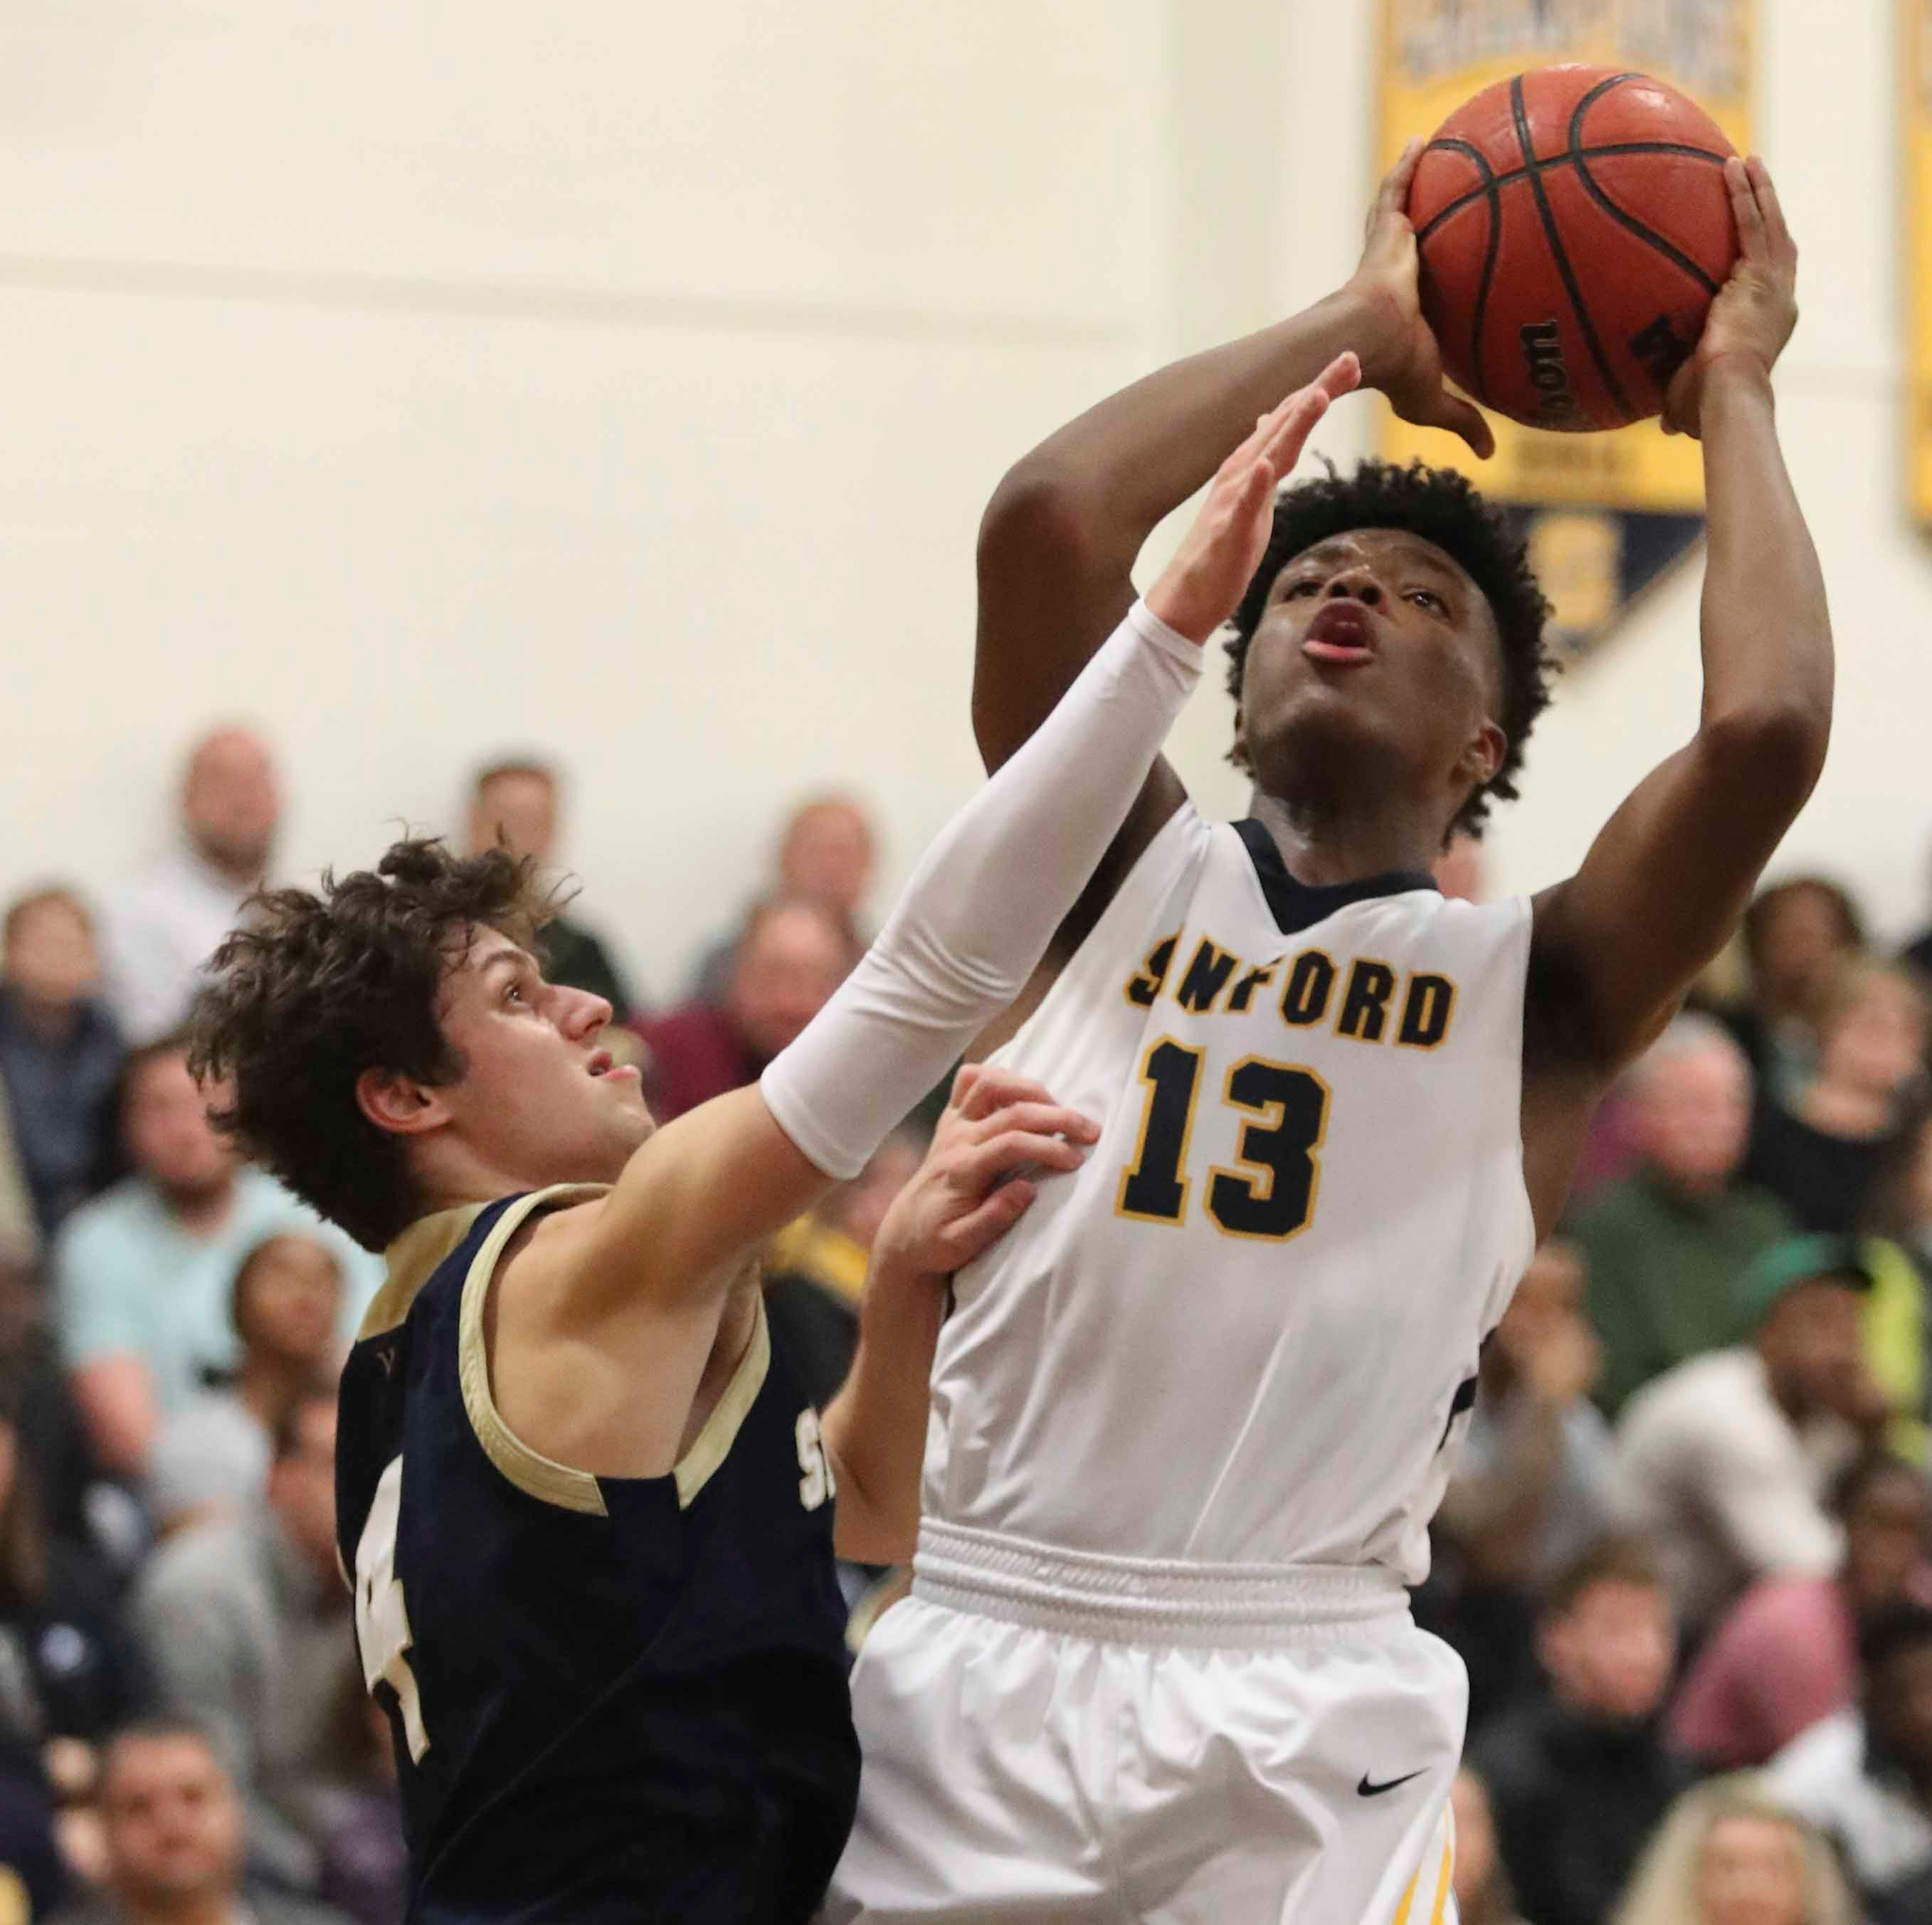 Sanford's Jyare Davis reaches milestone, wins Delaware Online Athlete of the Week vote